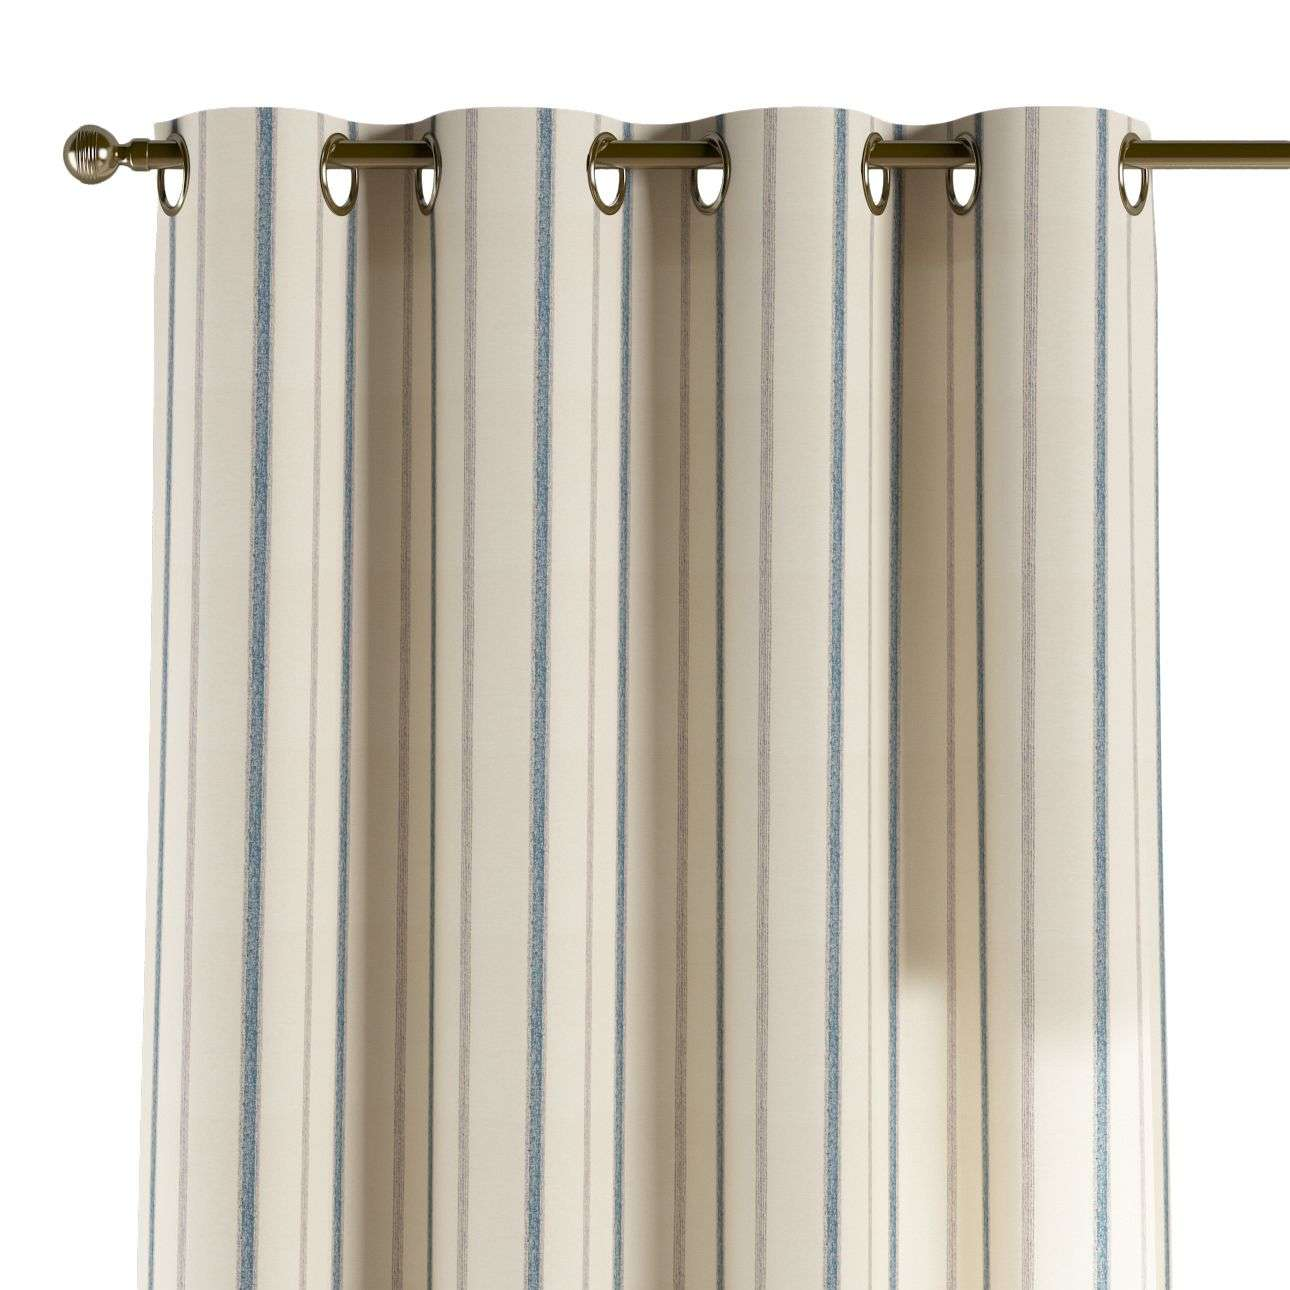 Eyelet curtains in collection Avinon, fabric: 129-66